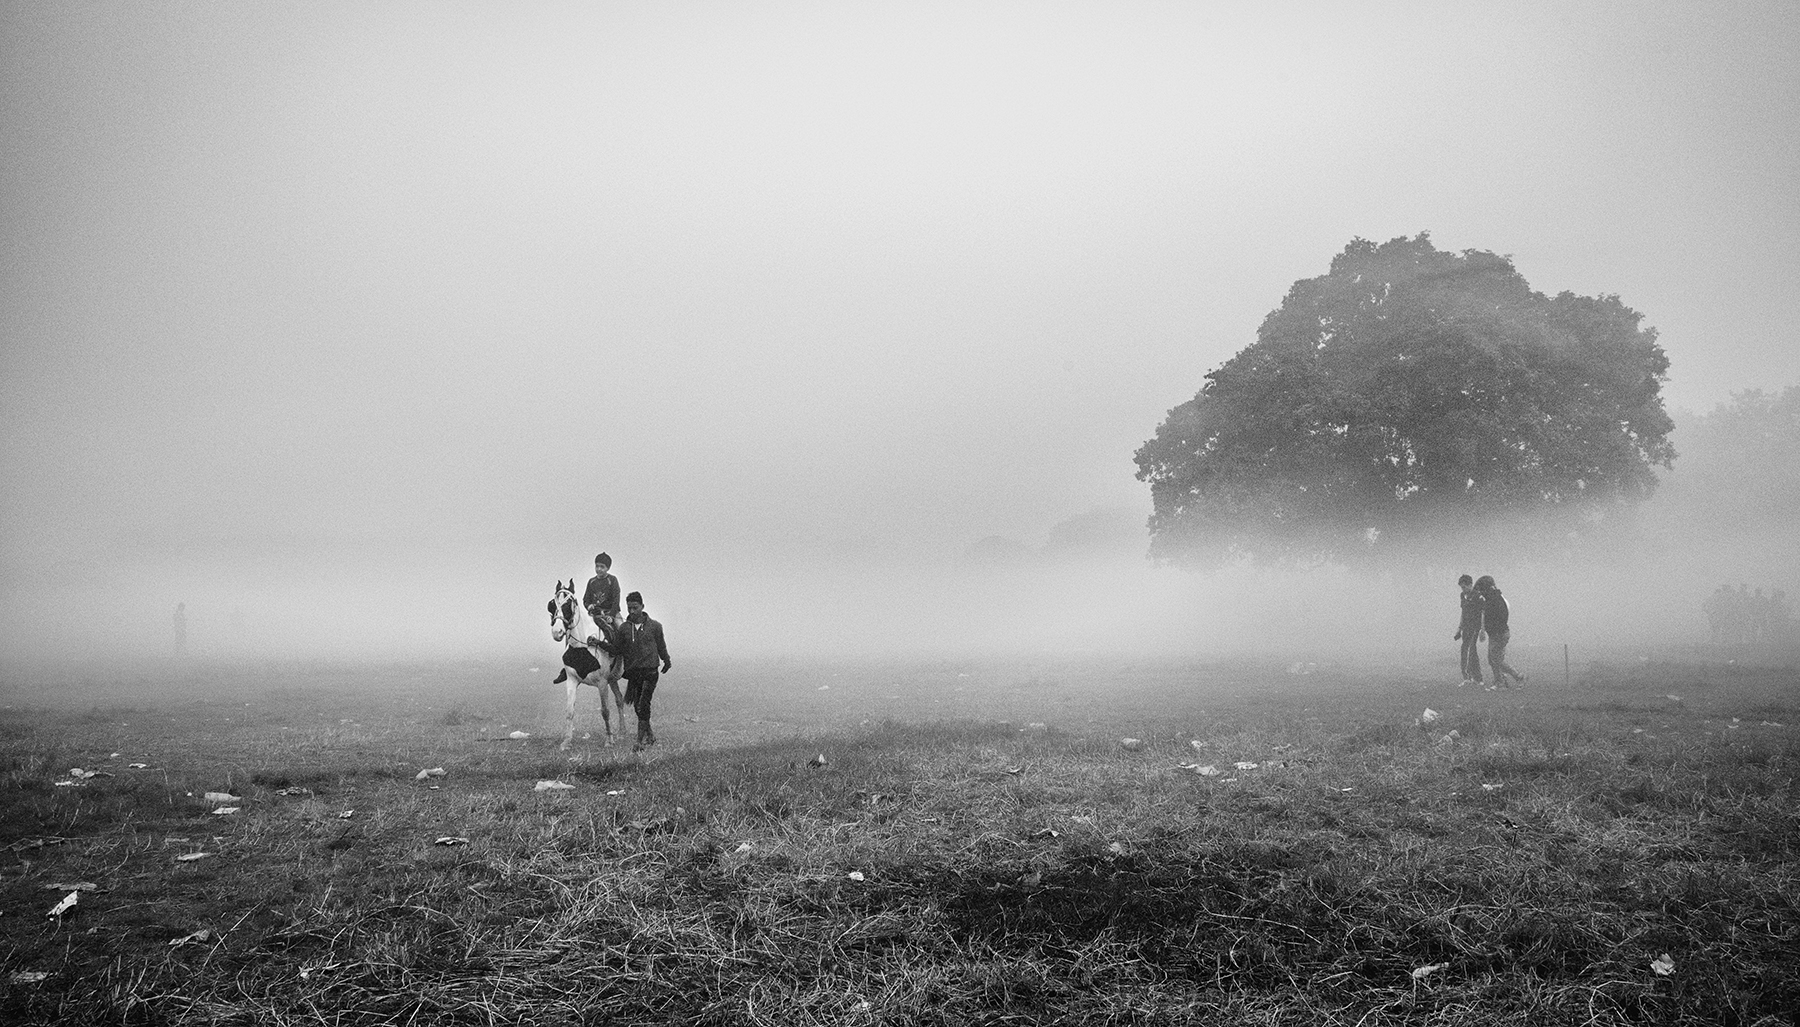 in a foggy chilled winter morning i saw a boy on a horse coming and fog surrounding.it looks like he come from heaven